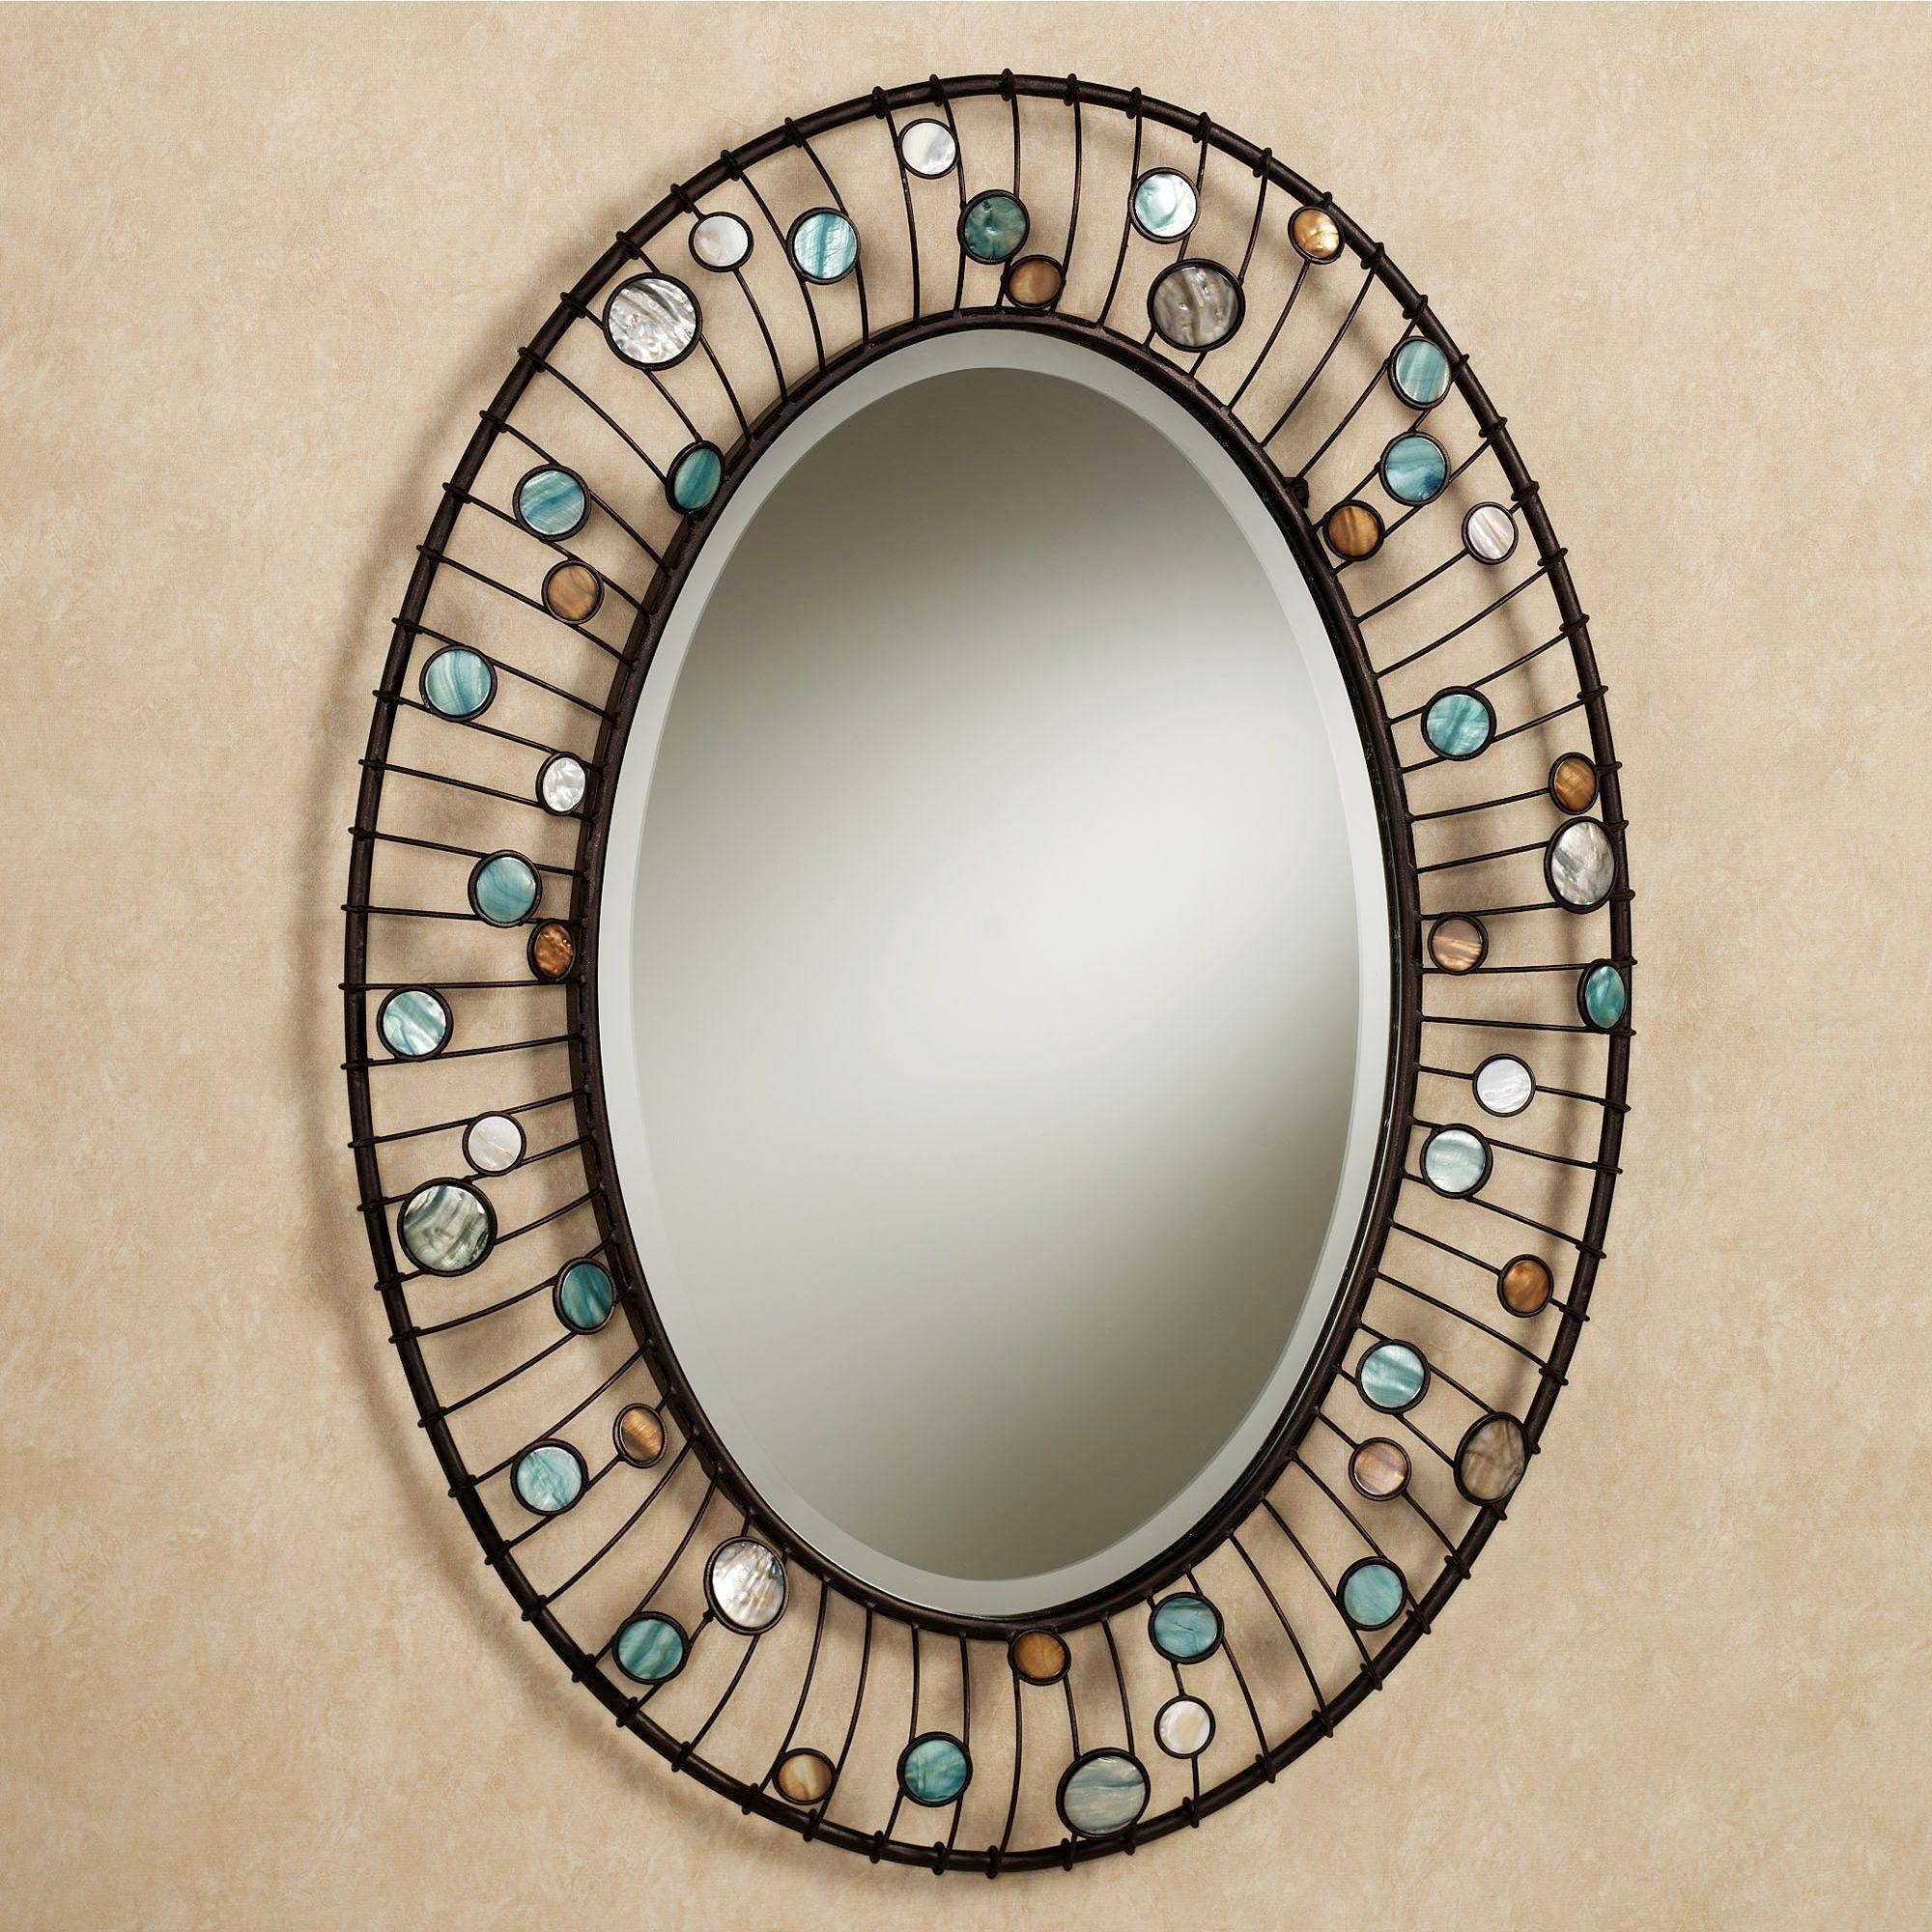 Capizia Oval Wall Mirror Regarding Oval Wall Mirrors (View 3 of 25)